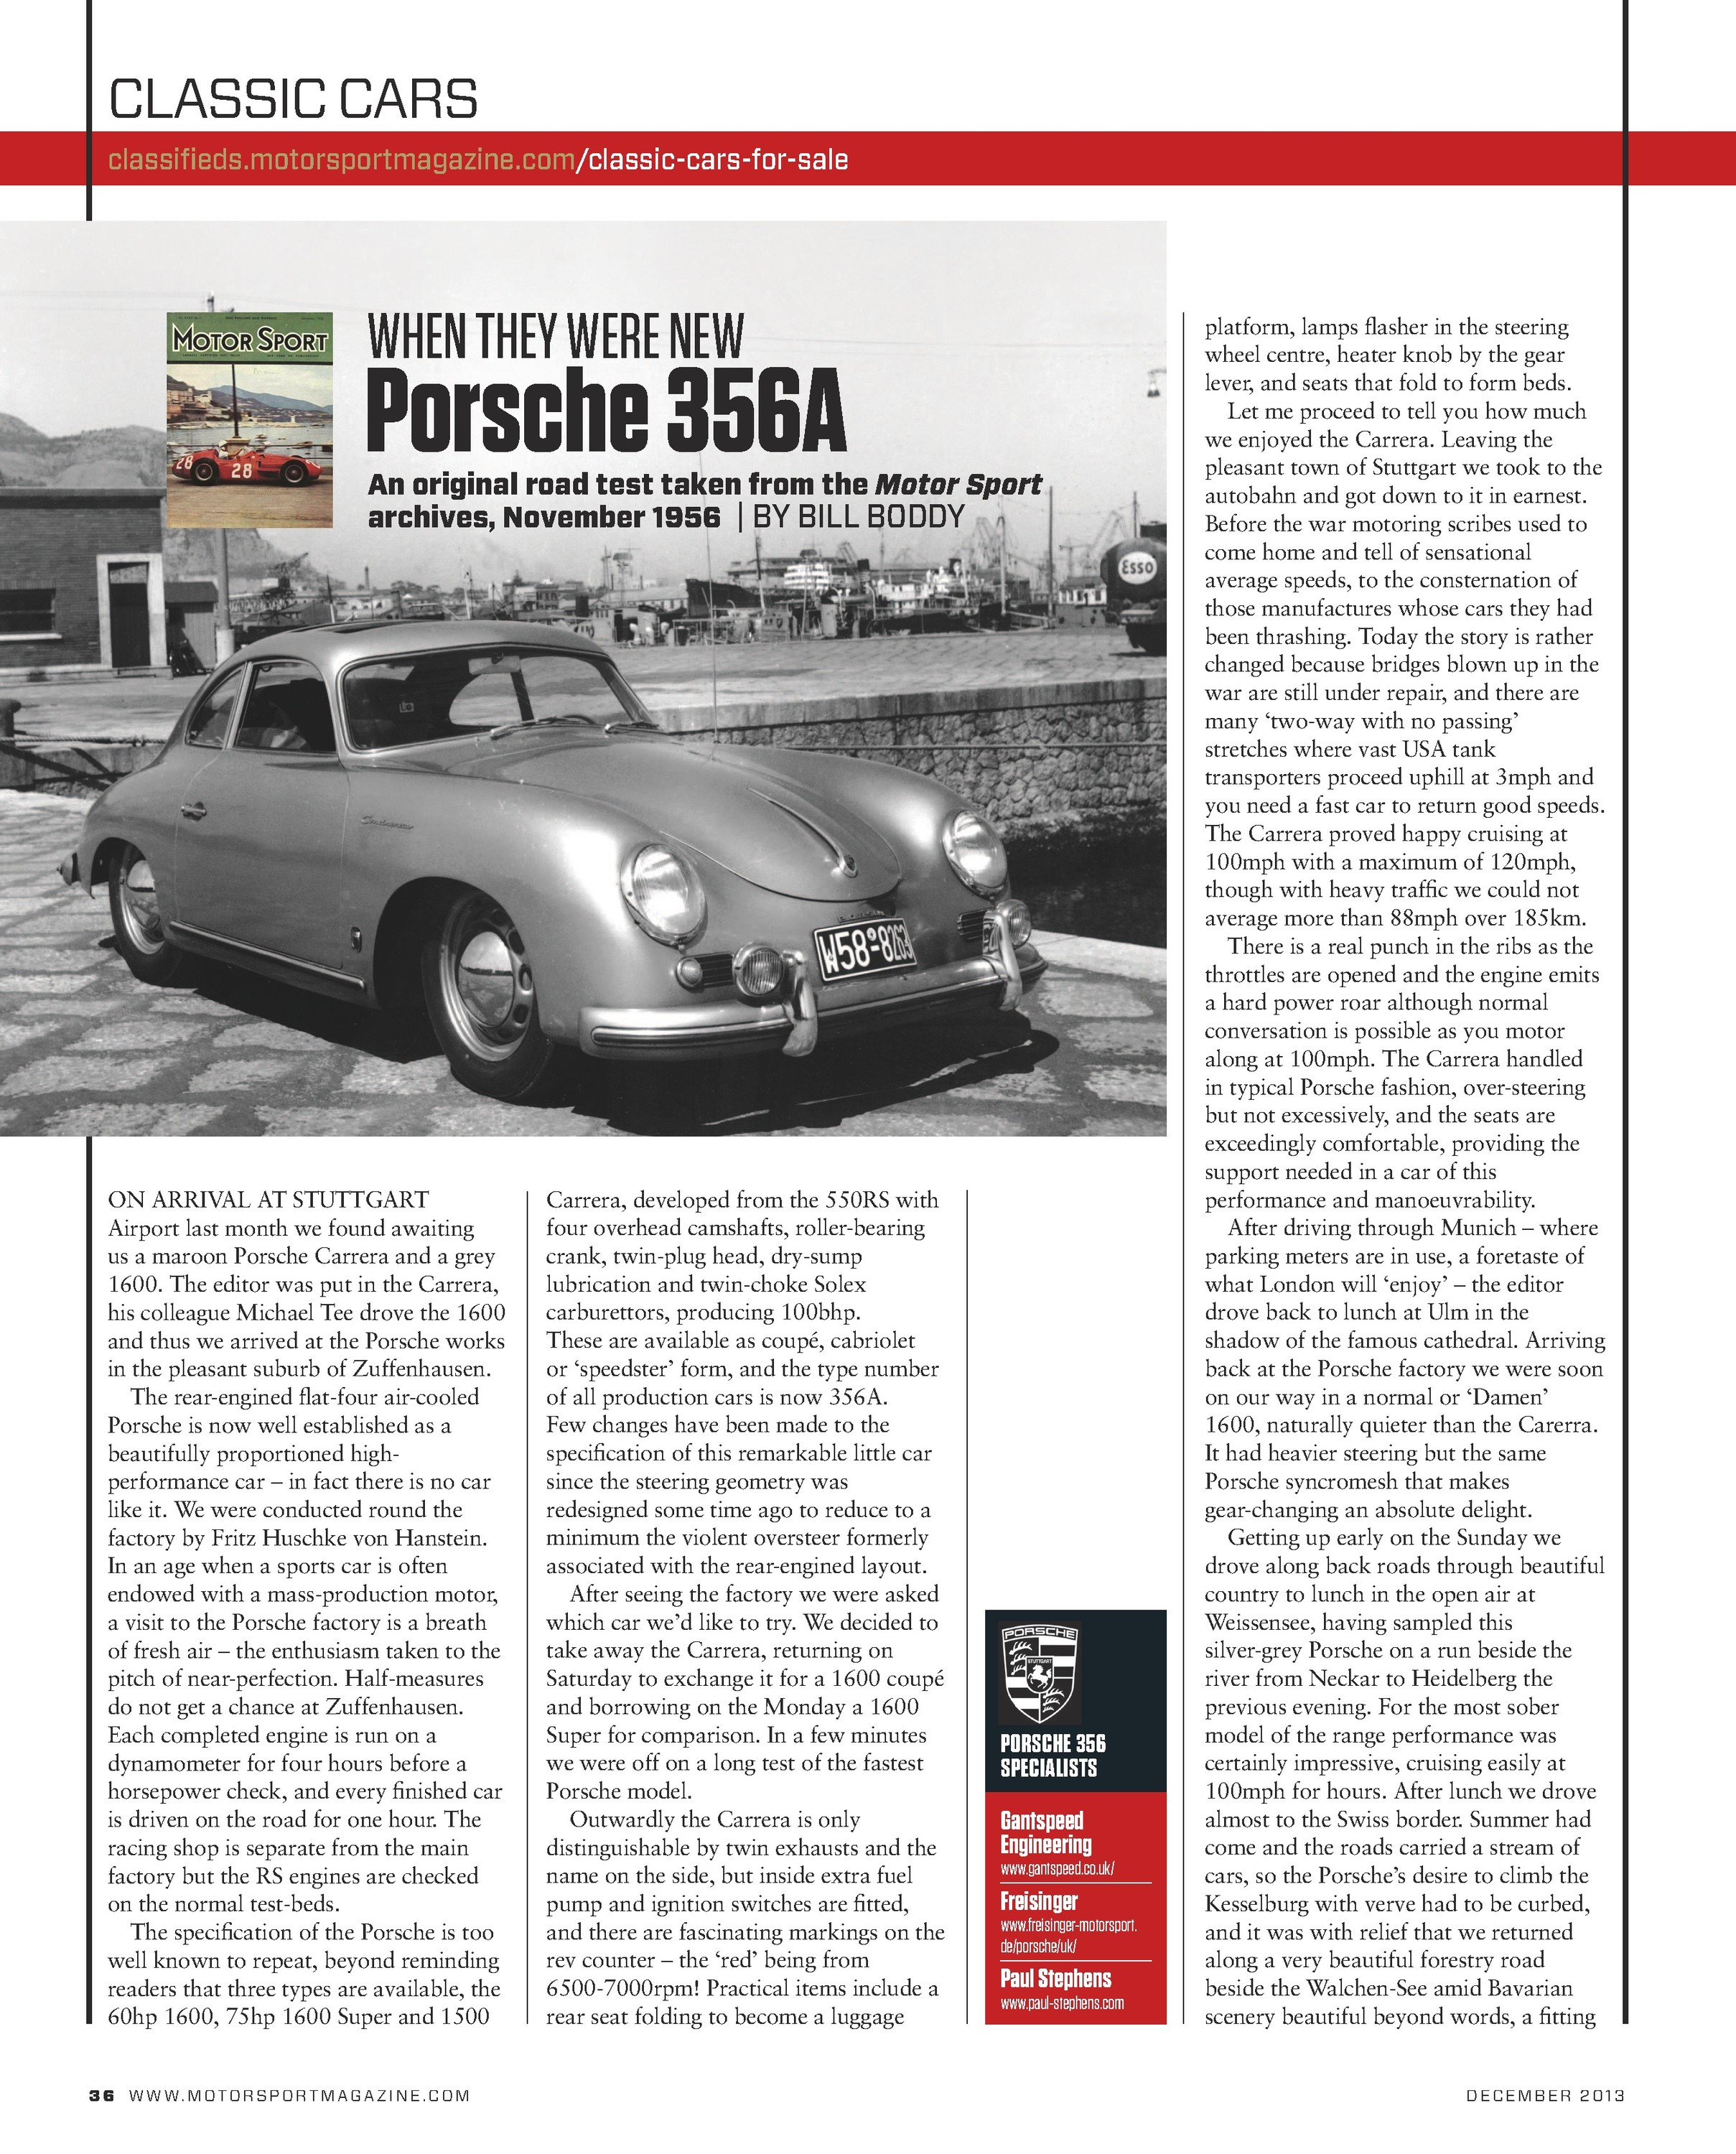 When They Were New Porsche 356a Motor Sport Magazine